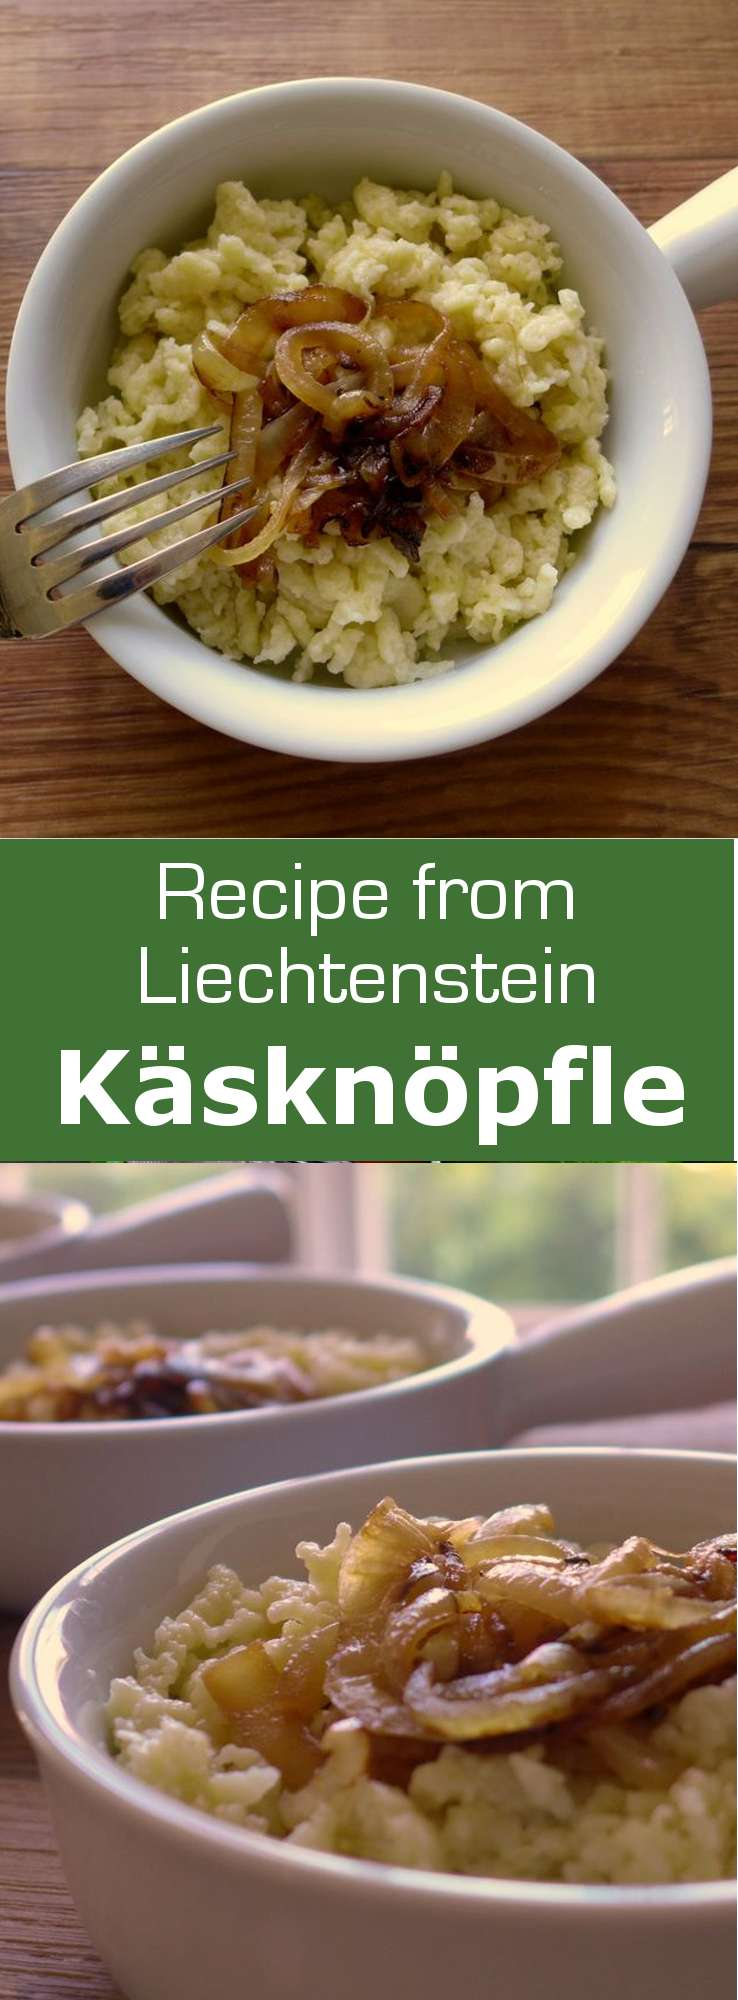 Käsknöpfle are traditional cheese pasta from Liechtenstein. They are a cheese version of the classic German and Austrian spaetzle.